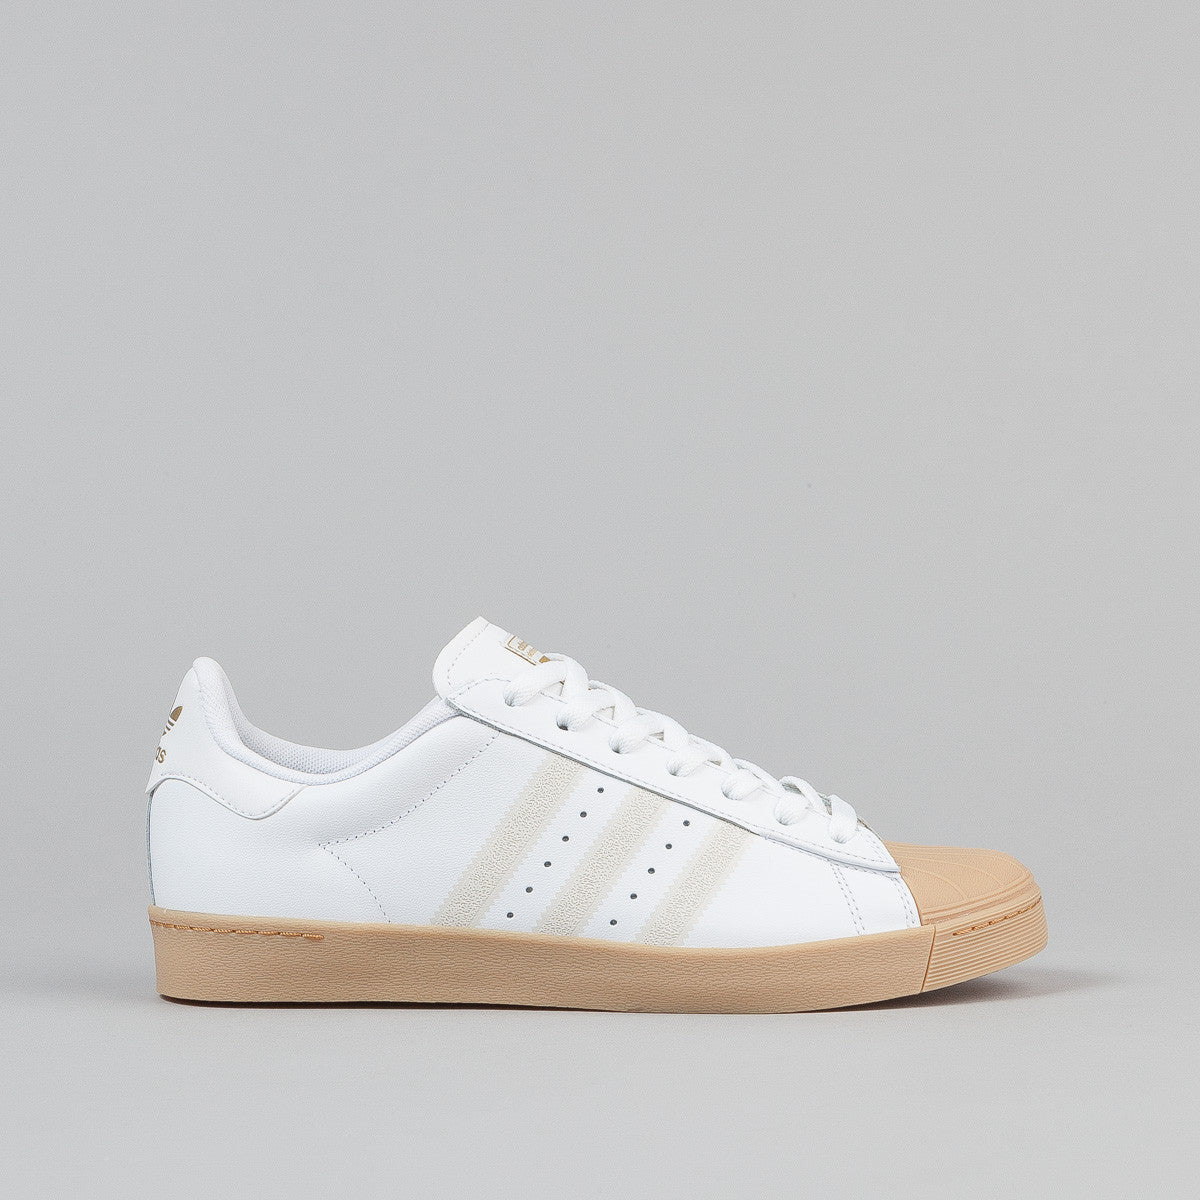 Adidas Superstar Vulc Shoes - FTWR White / FTWR White / Gum